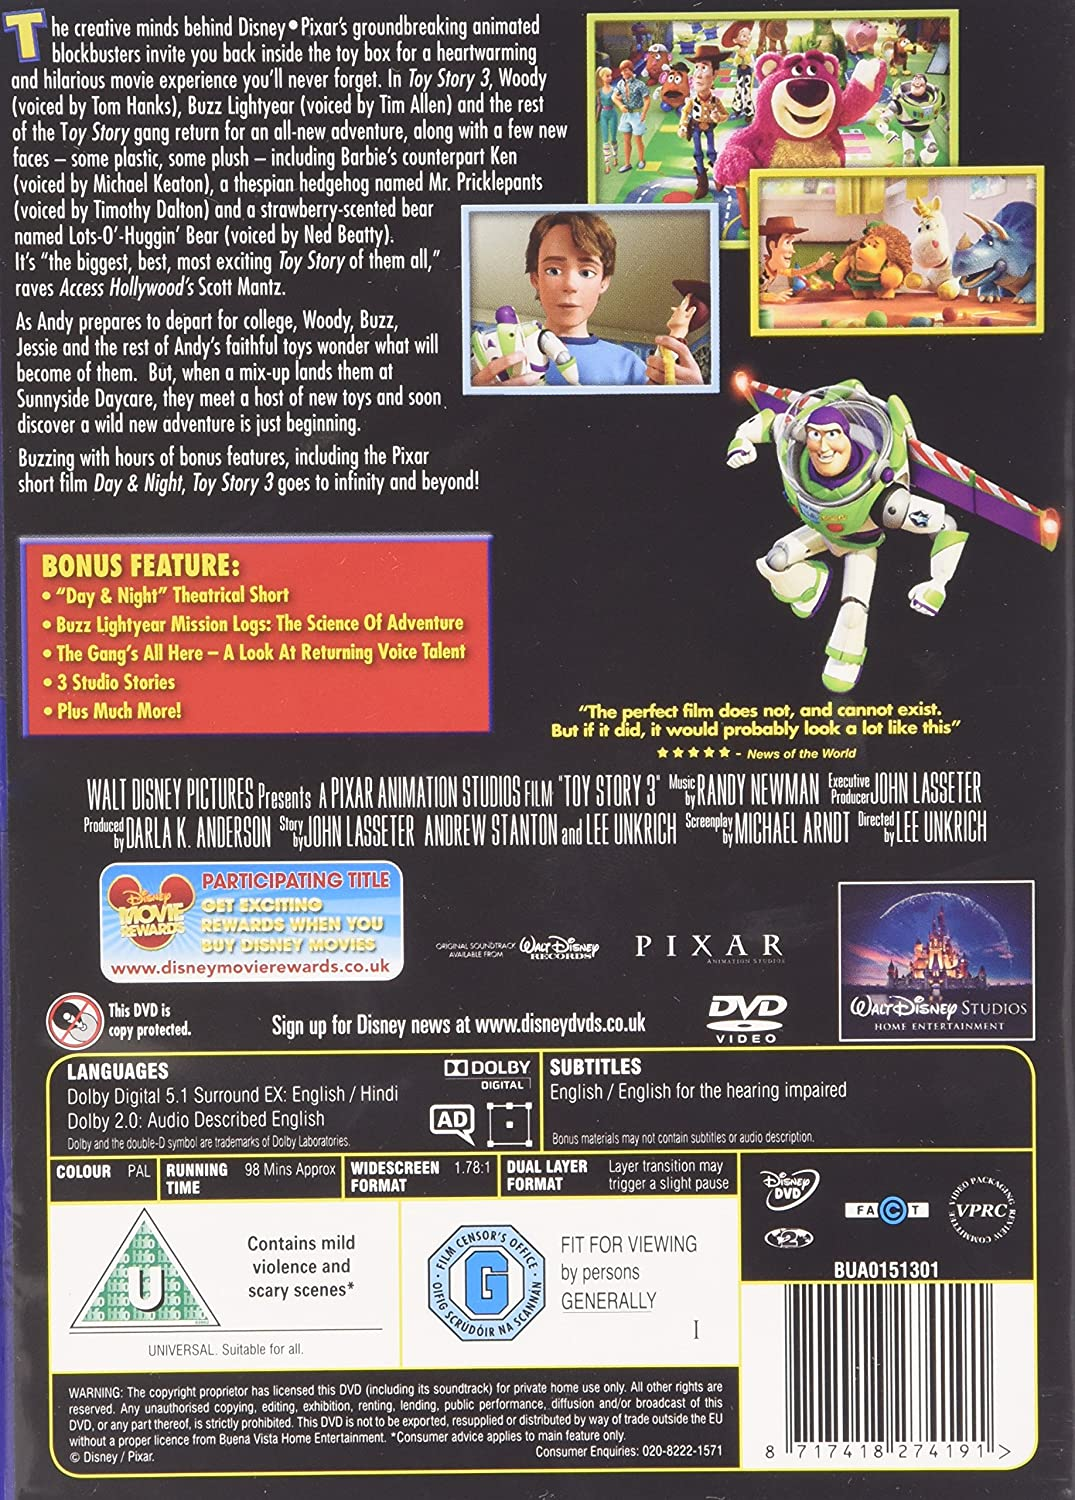 Toy story of terror 1 2 3 buzz lightyear of star command for sale - Toy Story 3 Dvd 2010 Amazon Co Uk Tom Hanks Tim Allen Joan Cusack Ned Beatty Don Rickles Michael Keaton Wallace Shawn John Ratzenberger